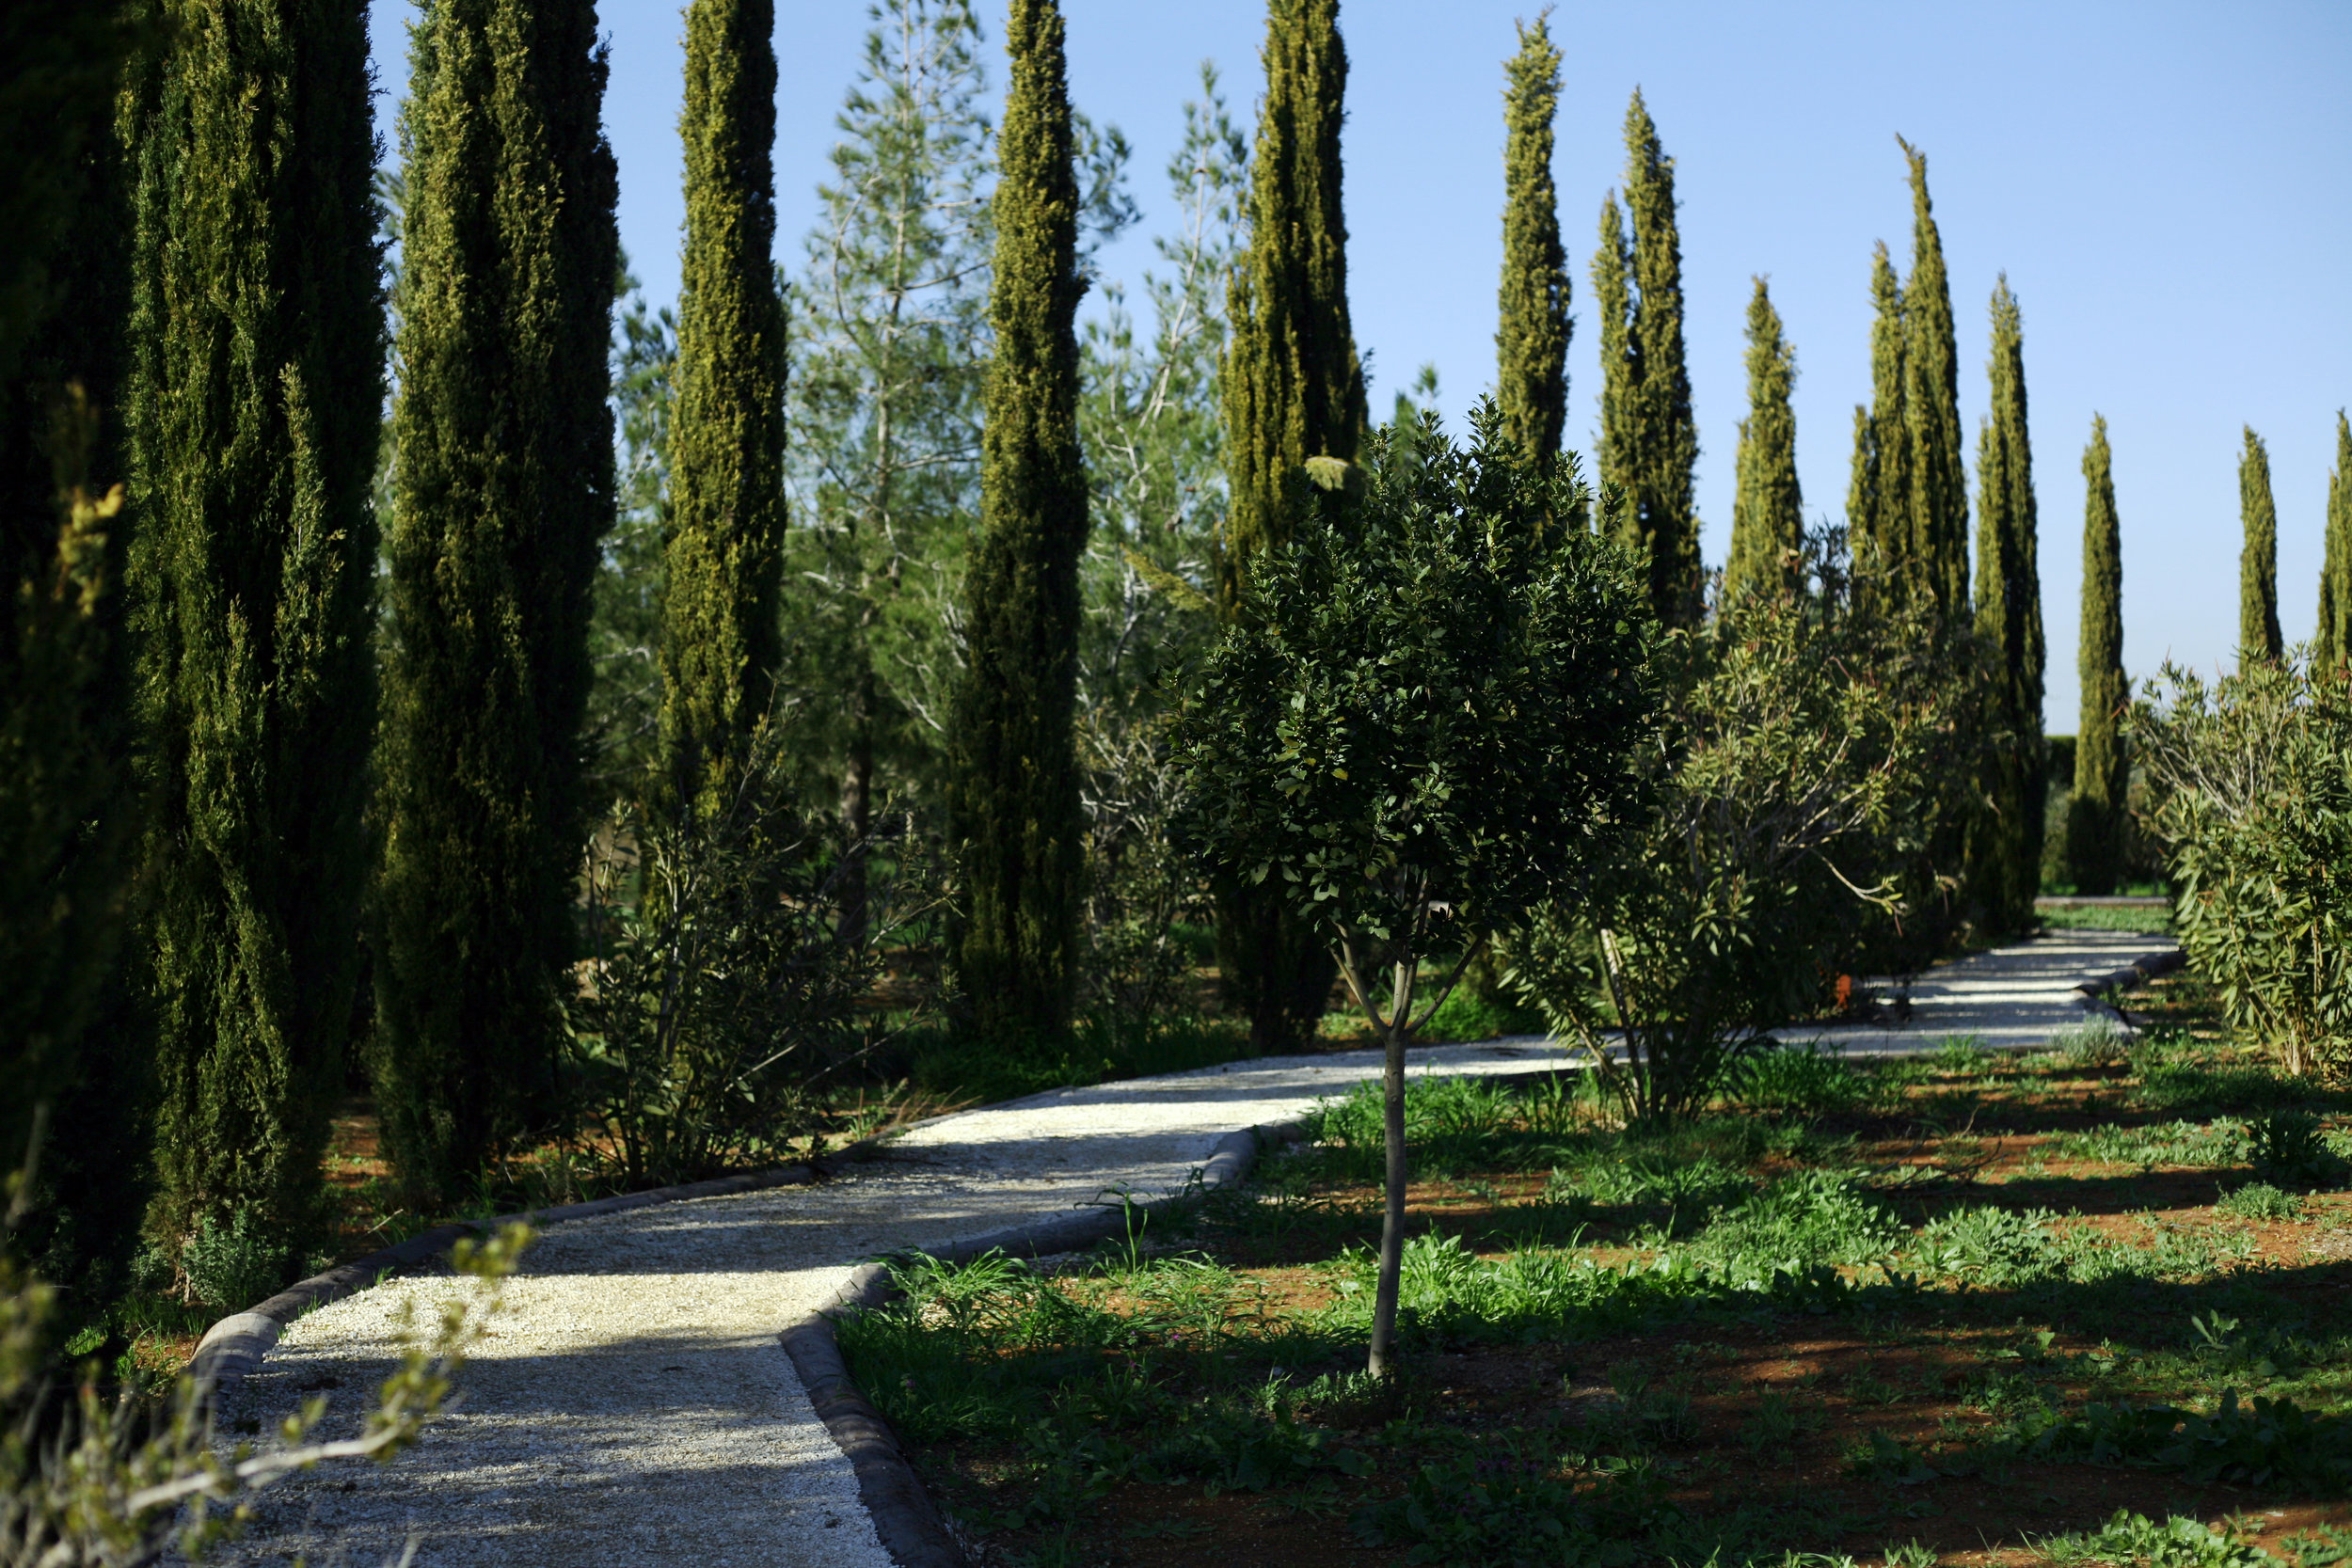 Cypress trees form a walking path taking visitors around the garden | © CyHerbia